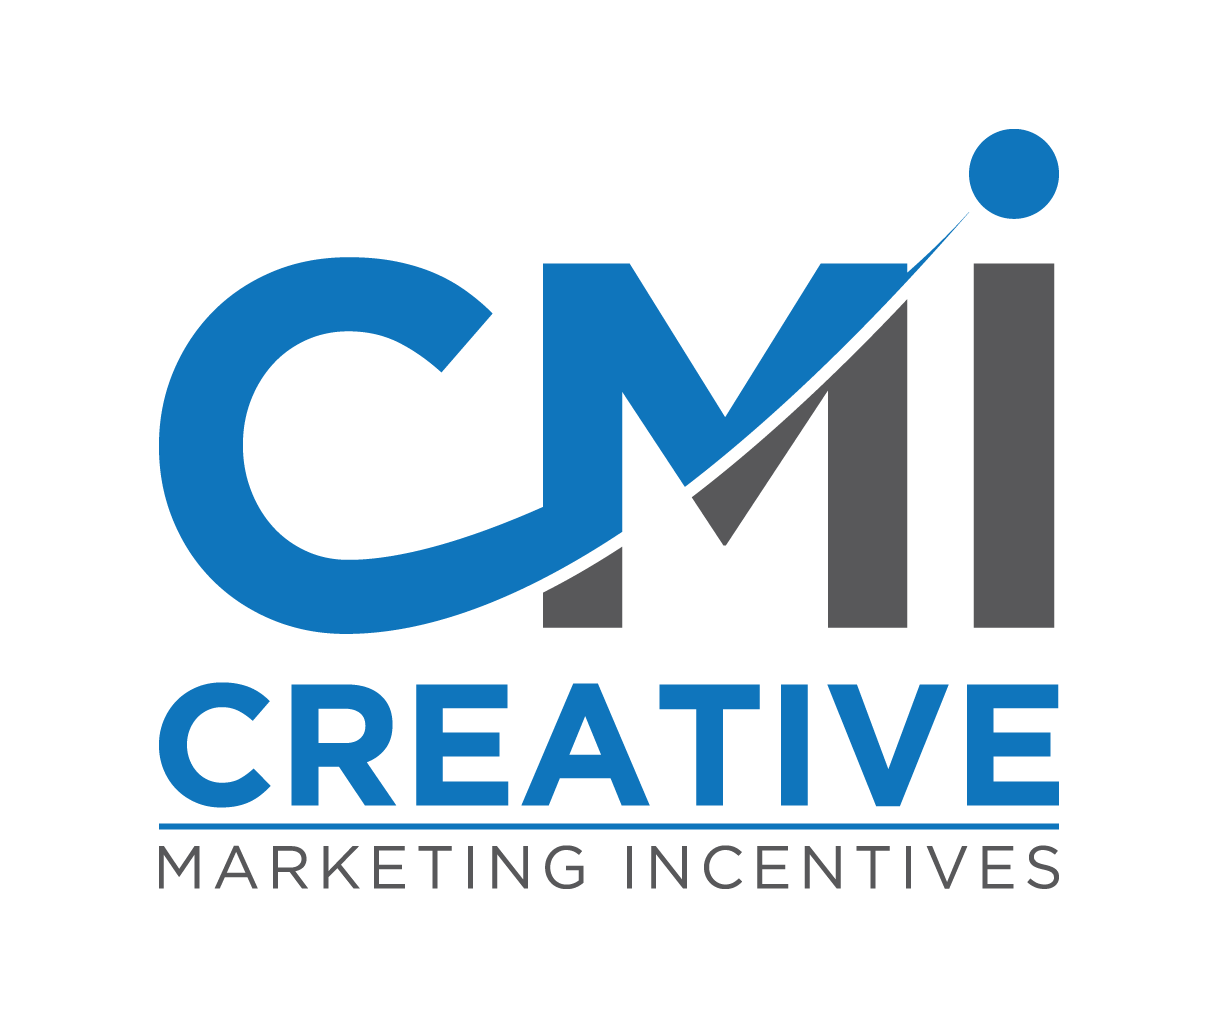 Creative Marketing Incentive Group, Inc. Help Center home page